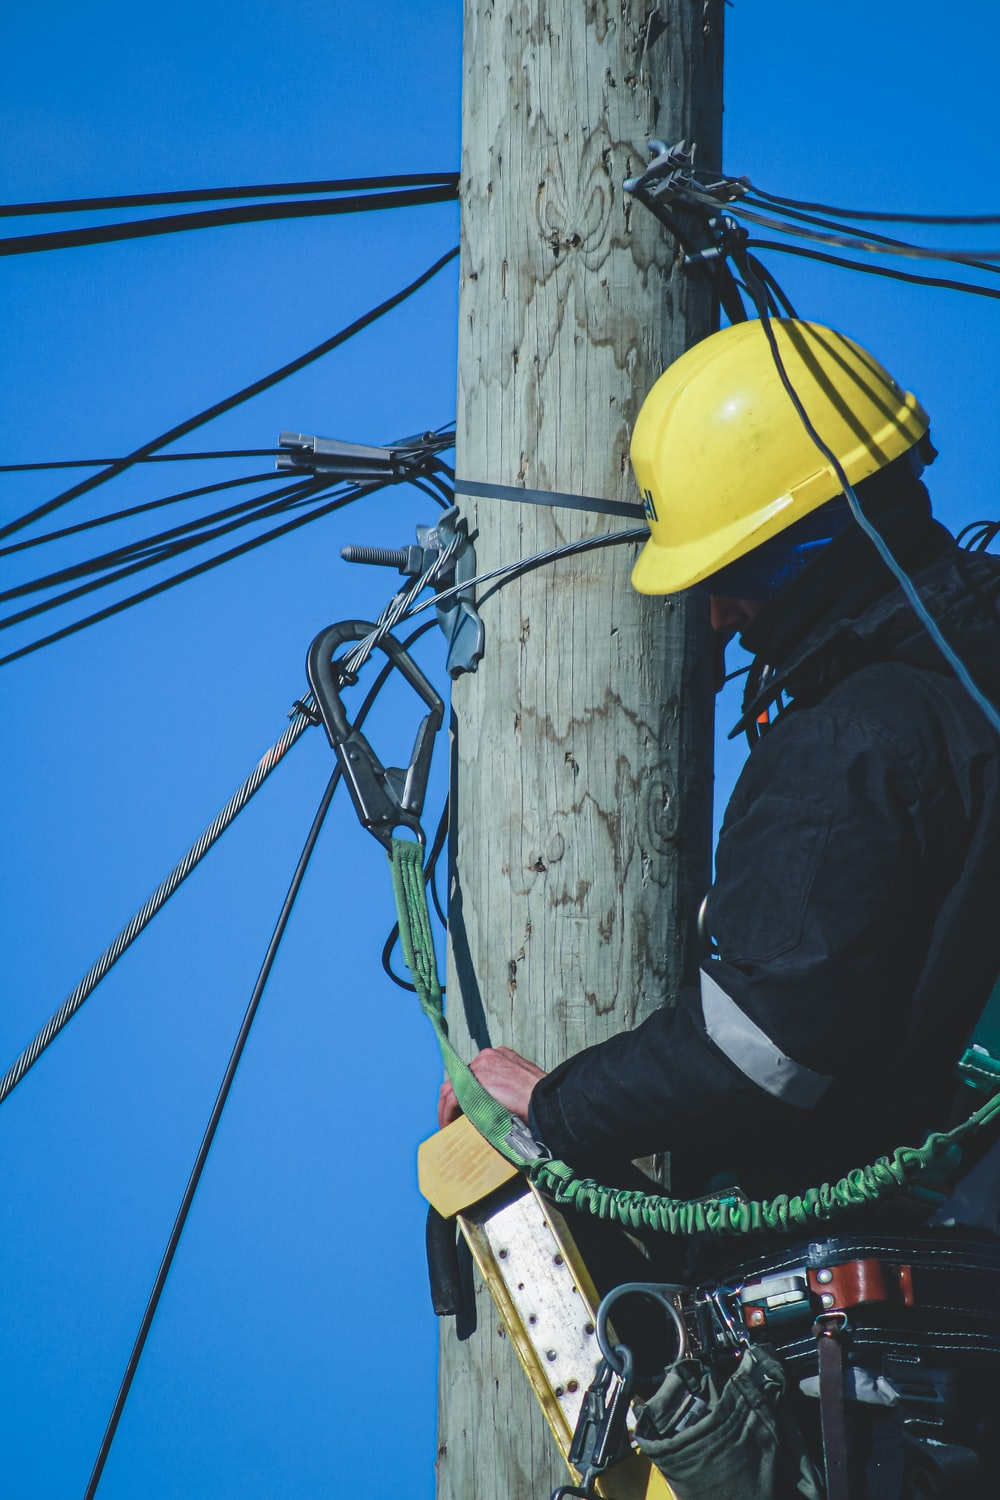 man in black jacket and yellow hard hat climbing on brown wooden post during daytime